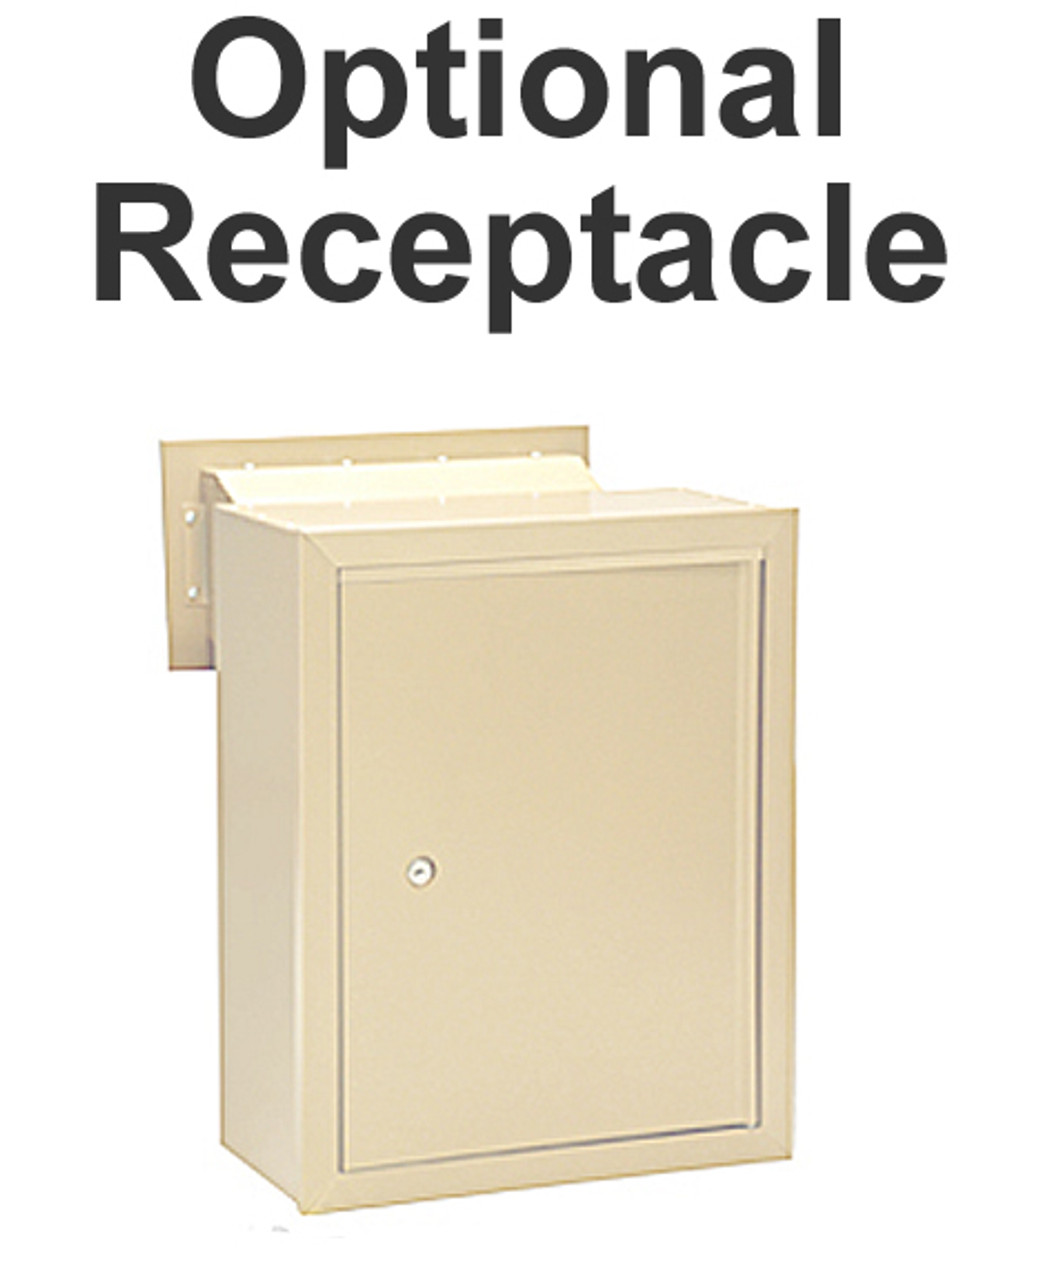 Wall Mail Drop Slot S2255 receptacle